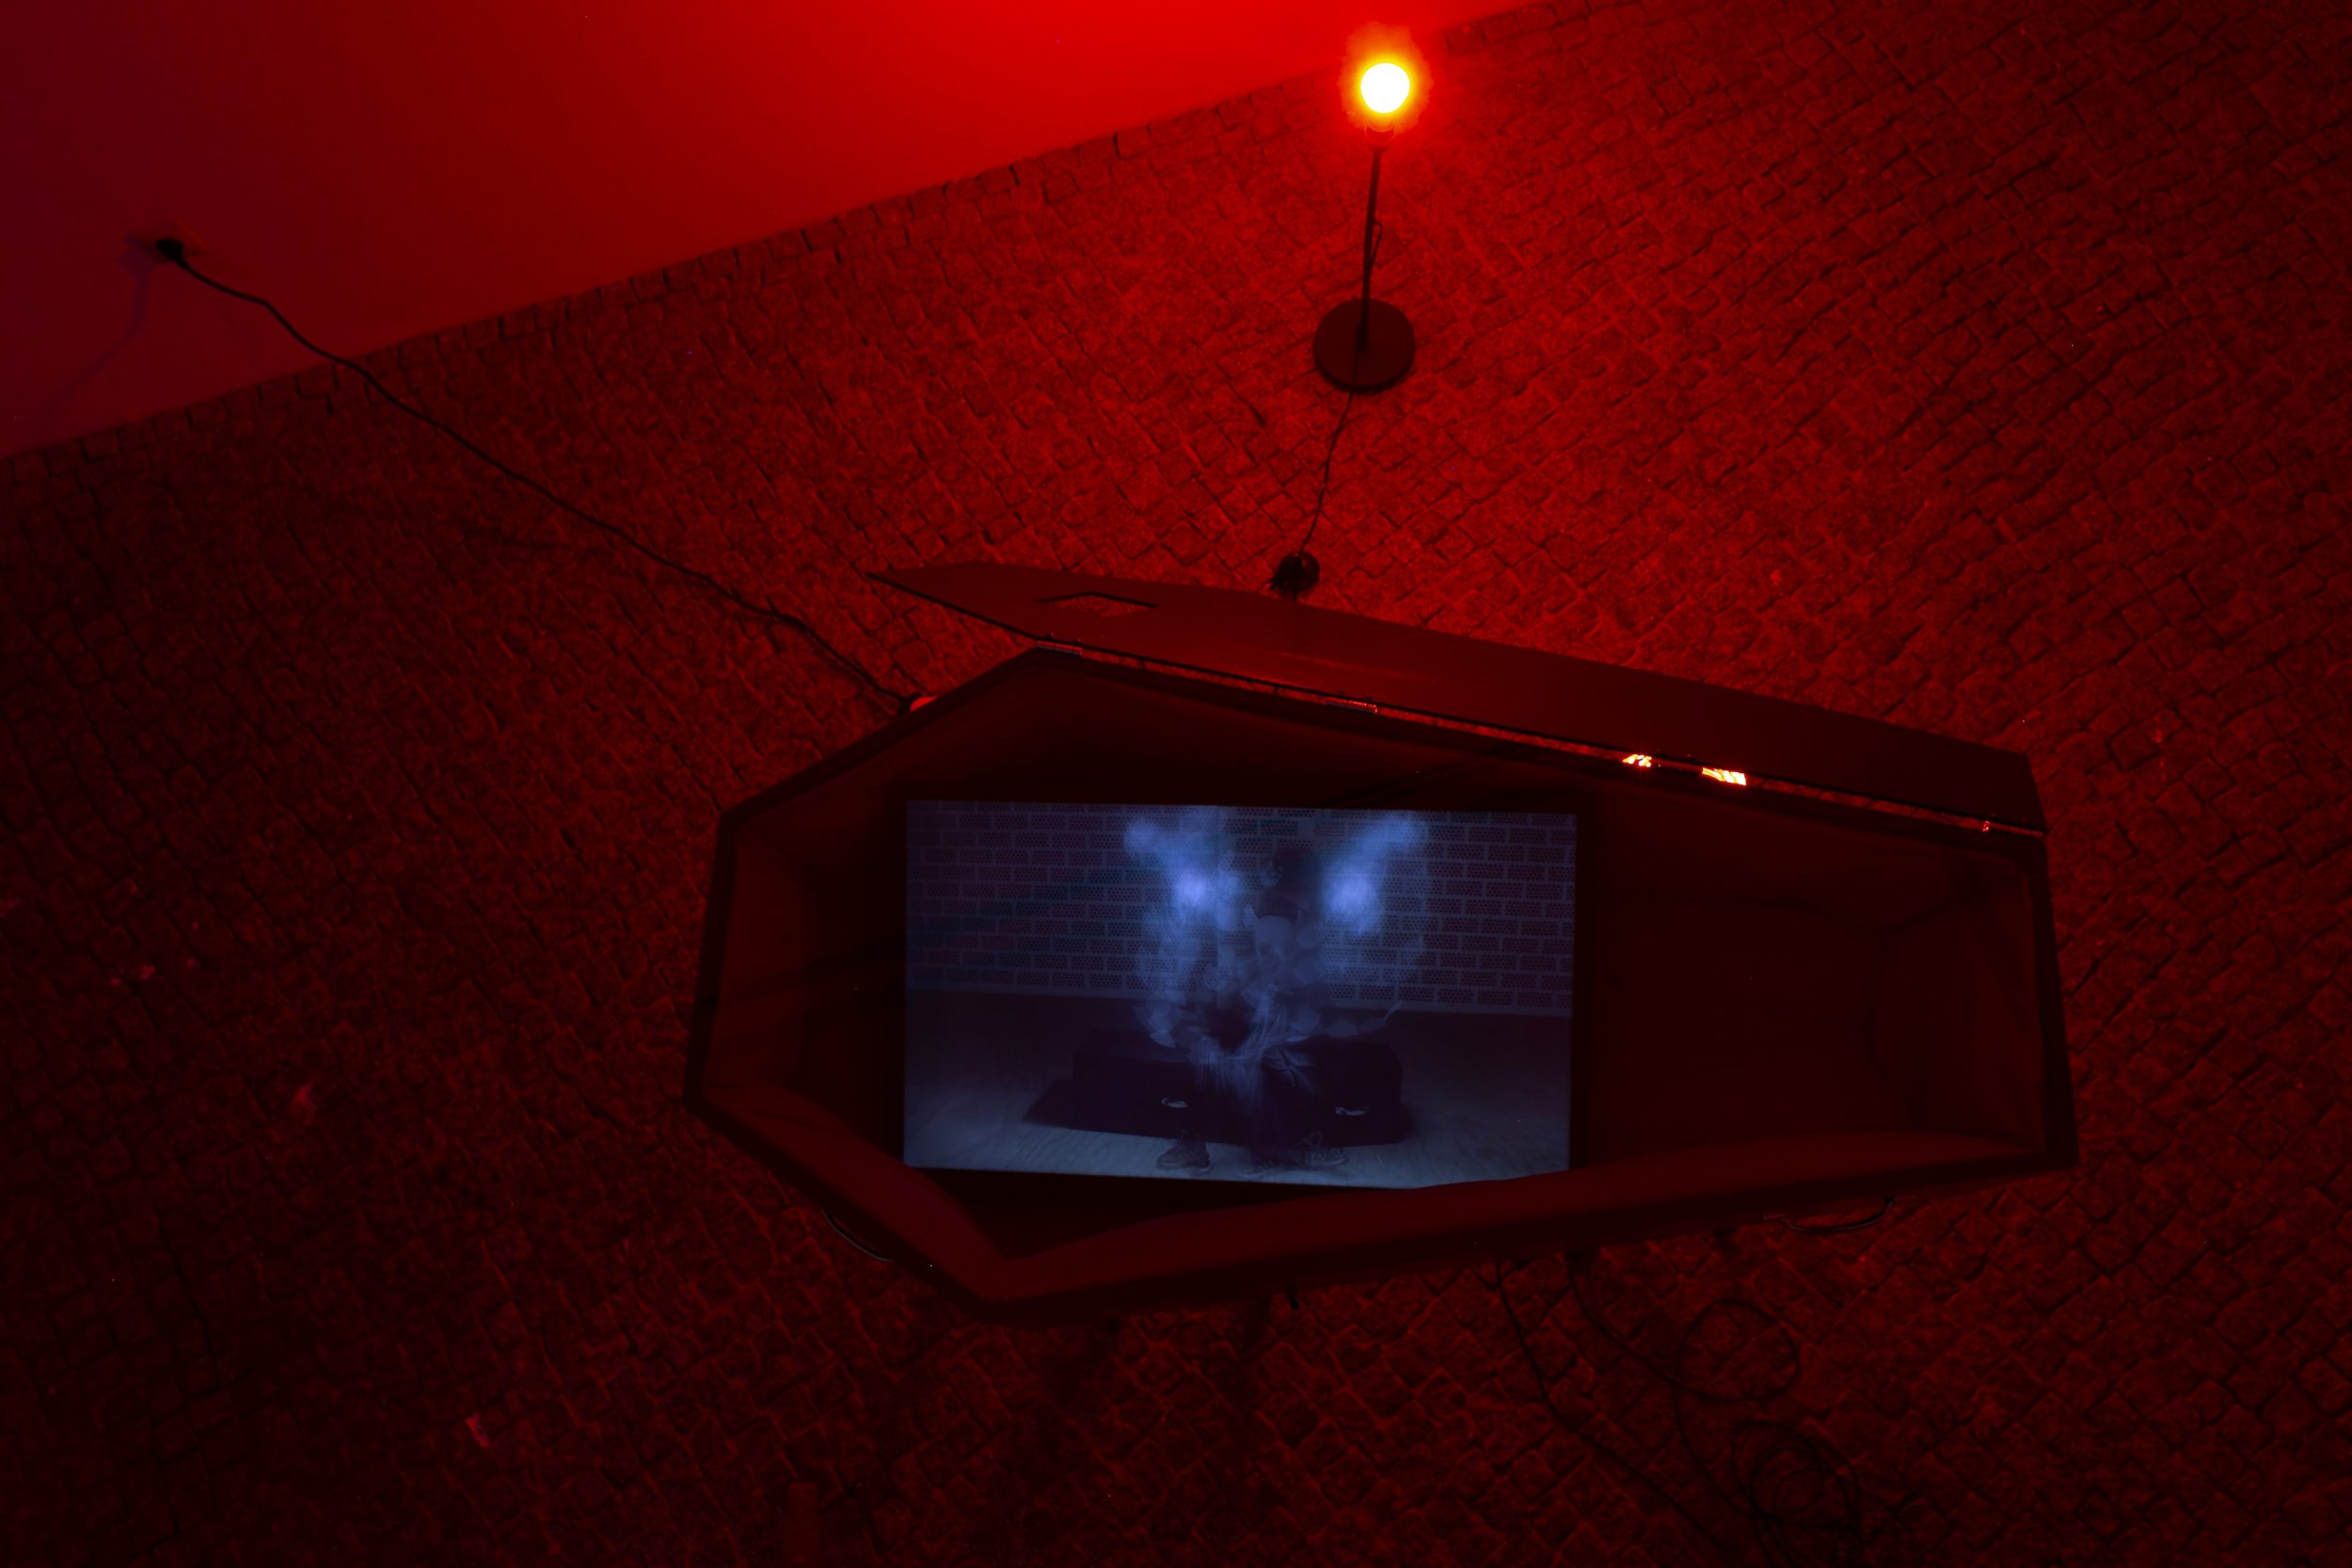 "<p>Esteban Rivera Ariza, ""Hören sie, die Kinder der Nacht, wie sie Musik machen"", 2019, video installation in coffin, exhibition detail, photo: Anastasia Muna</p>"